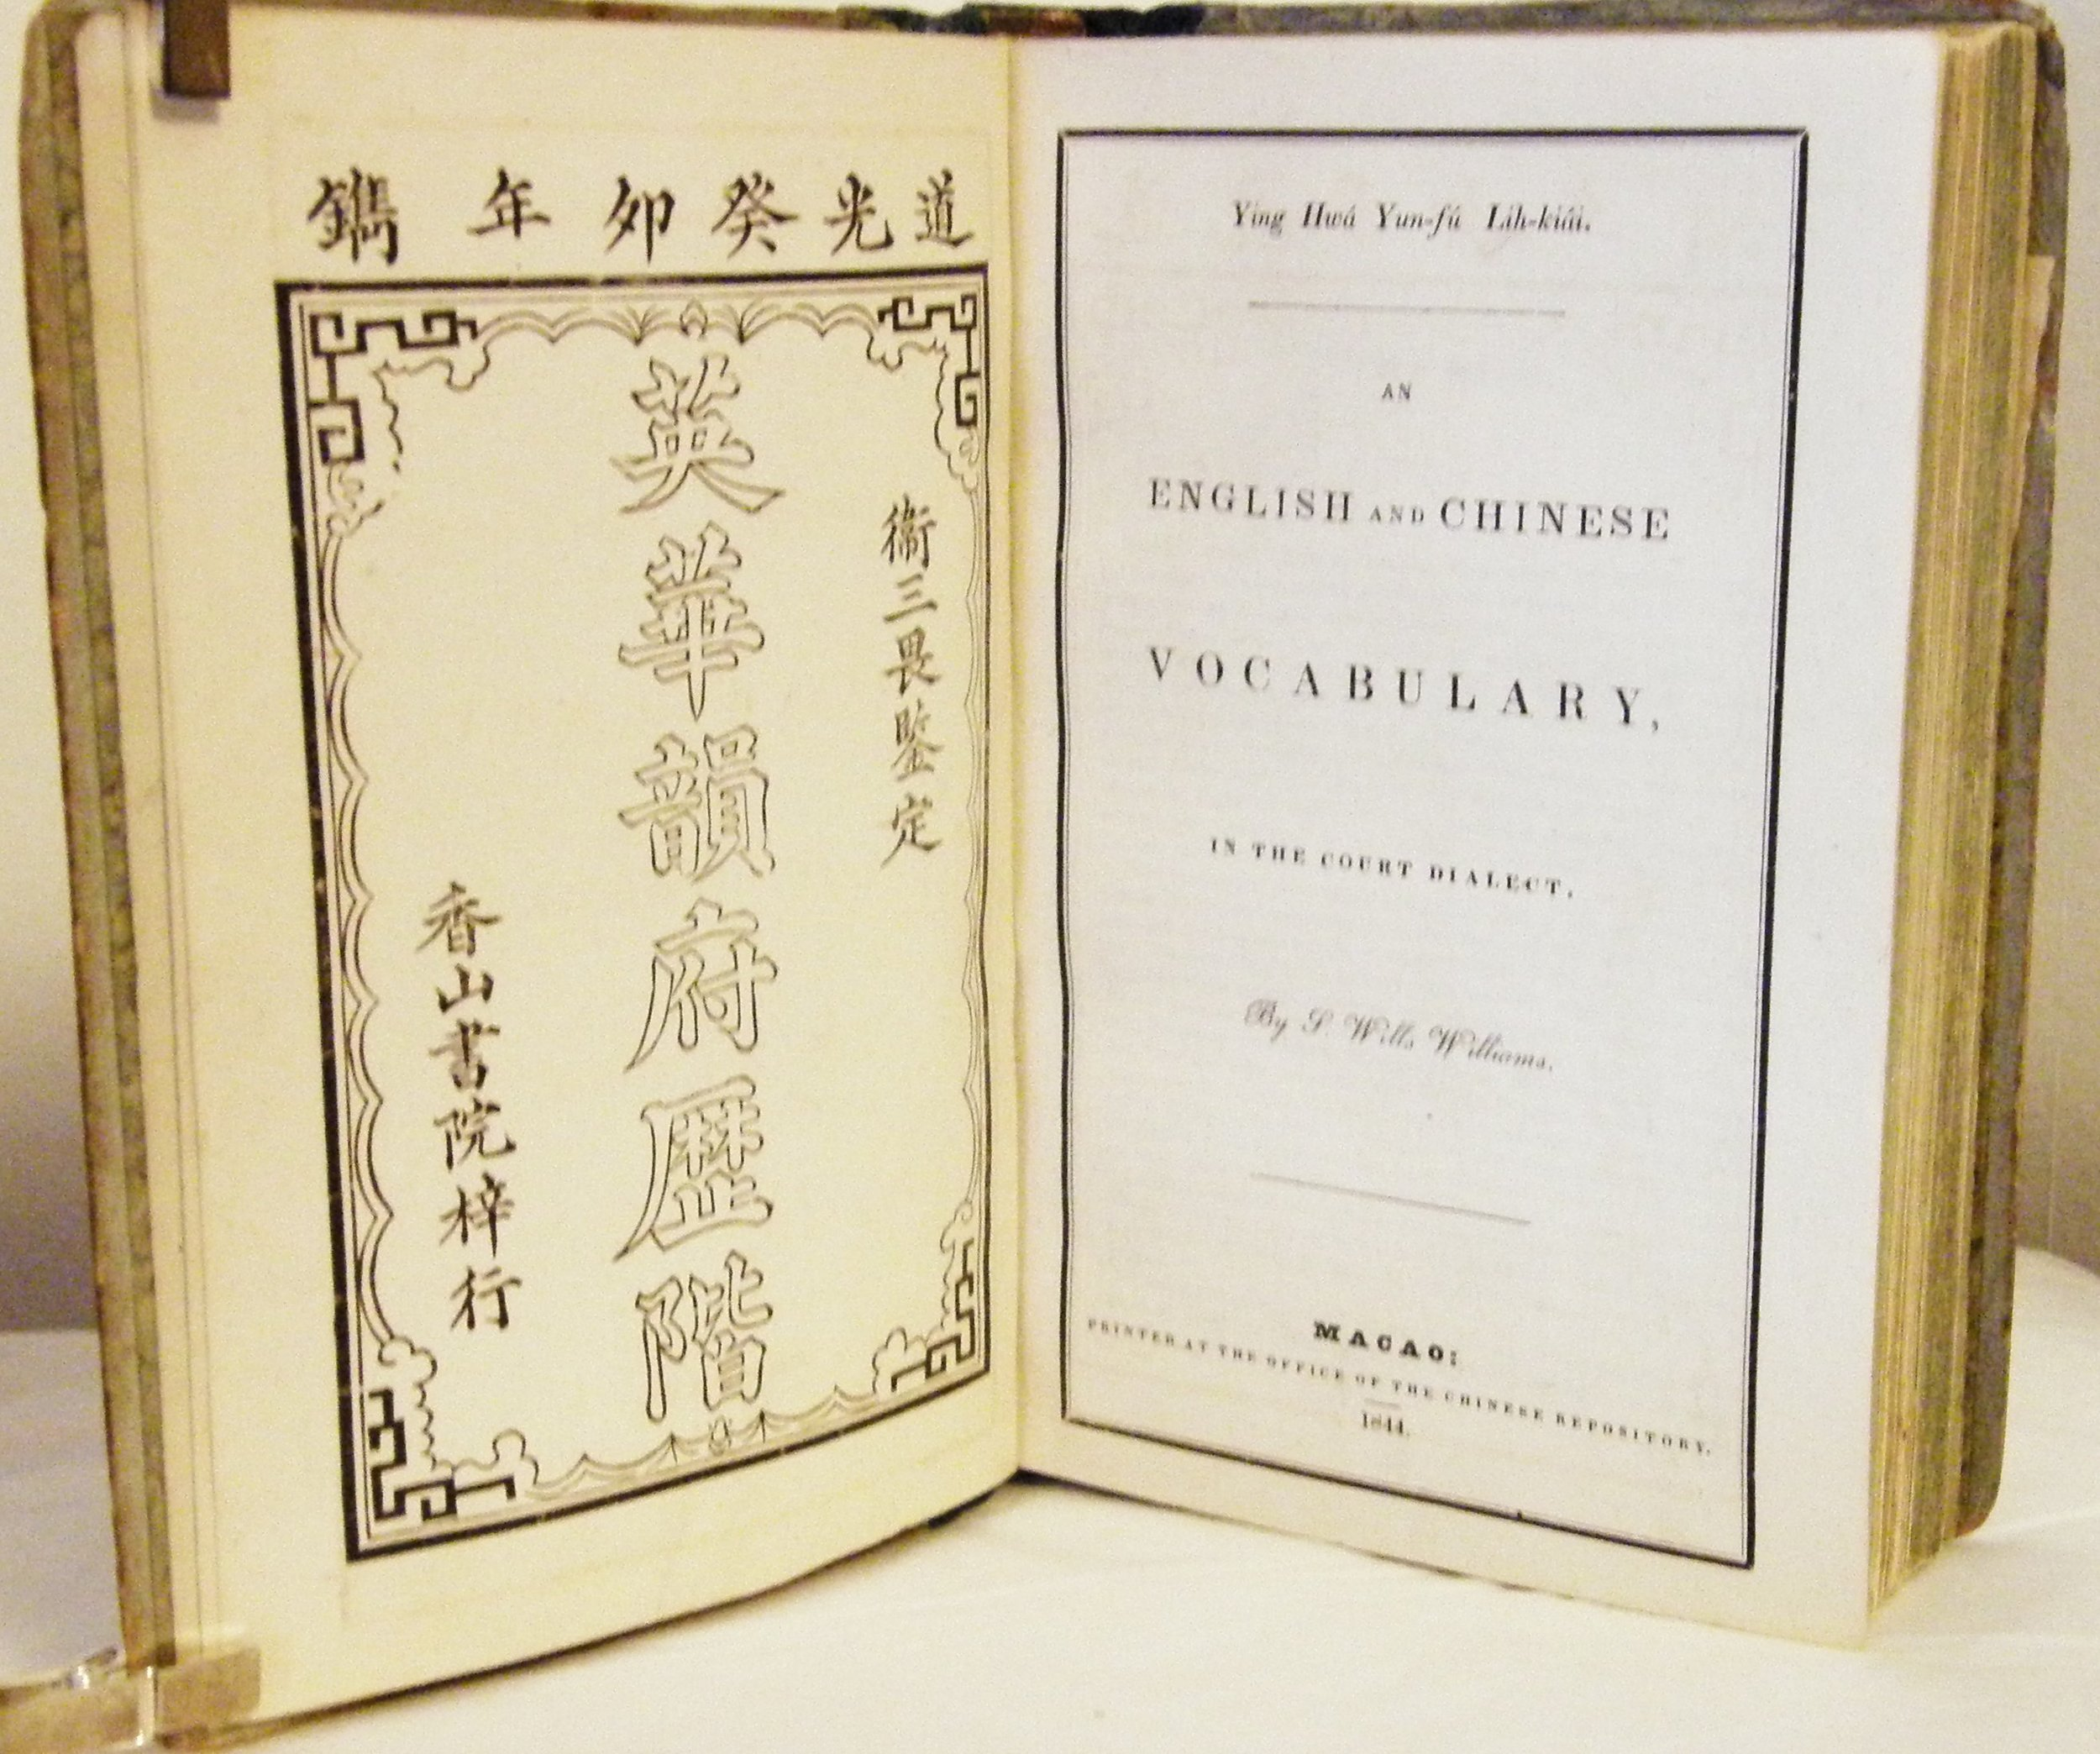 Williams, Ying Hwa Yun-fu Lih-kiai. An English and Chinese Vocabulary,... Macao, 1844